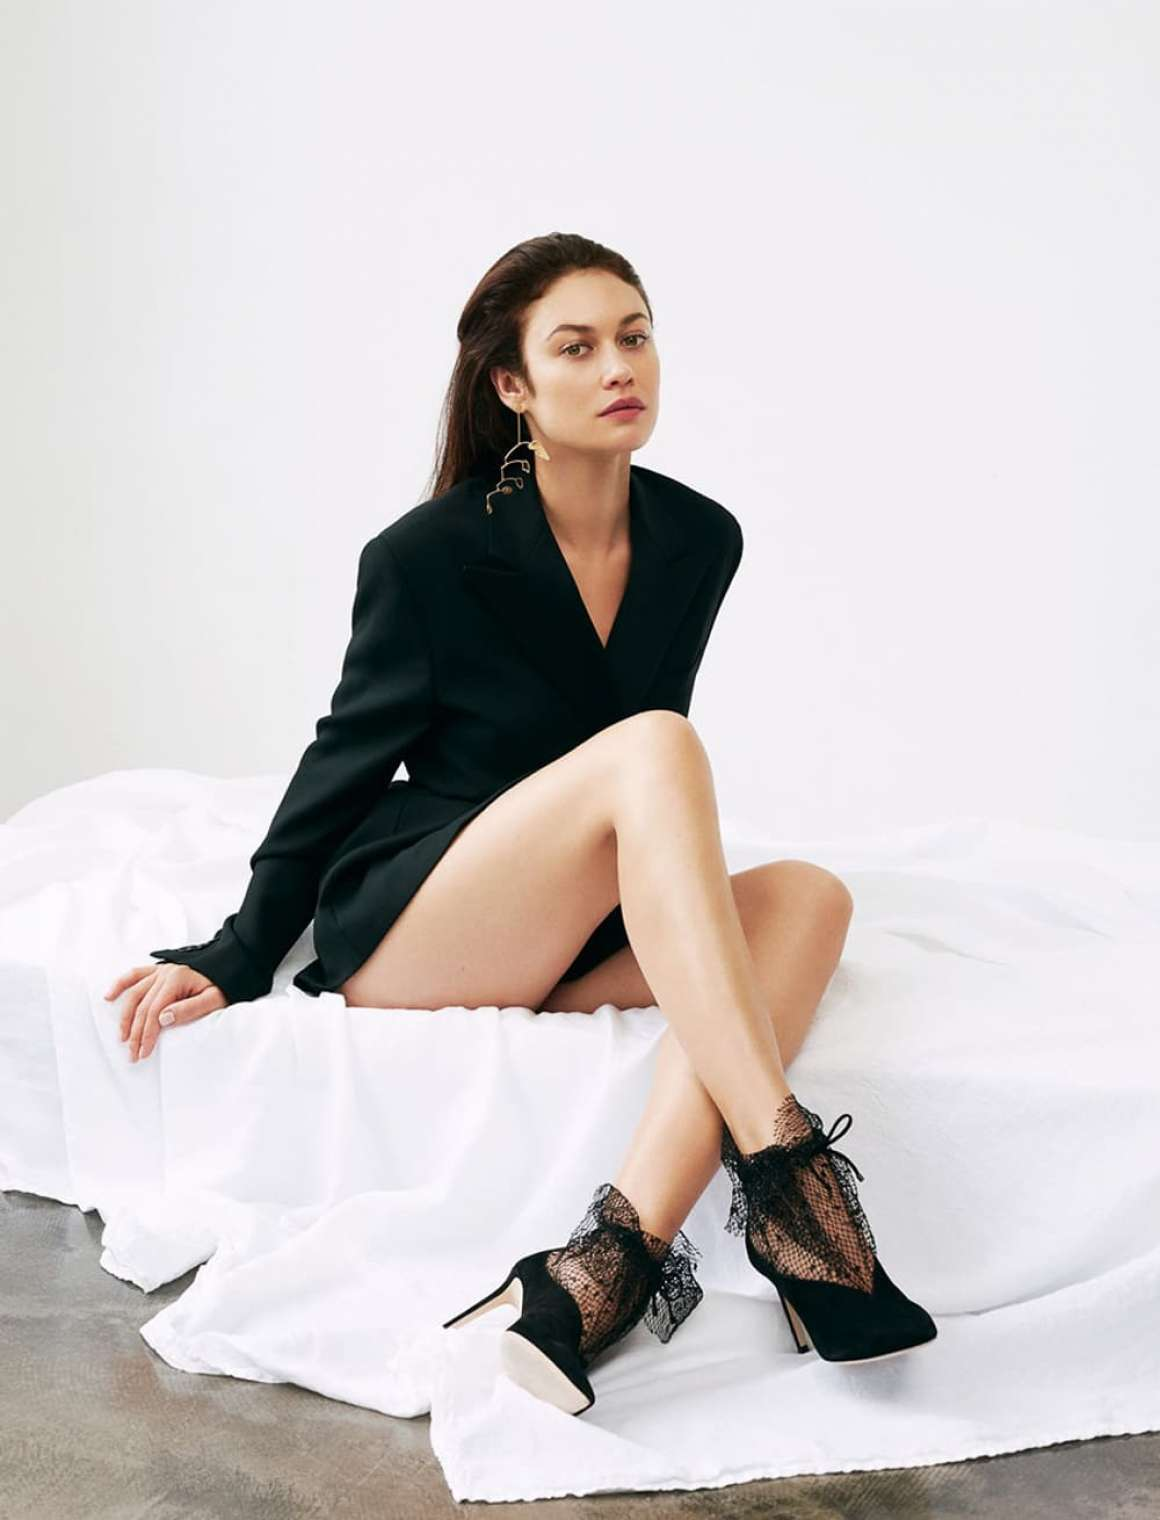 Olga Kurylenko – Wylde Magazine (Fall Winter 2018)